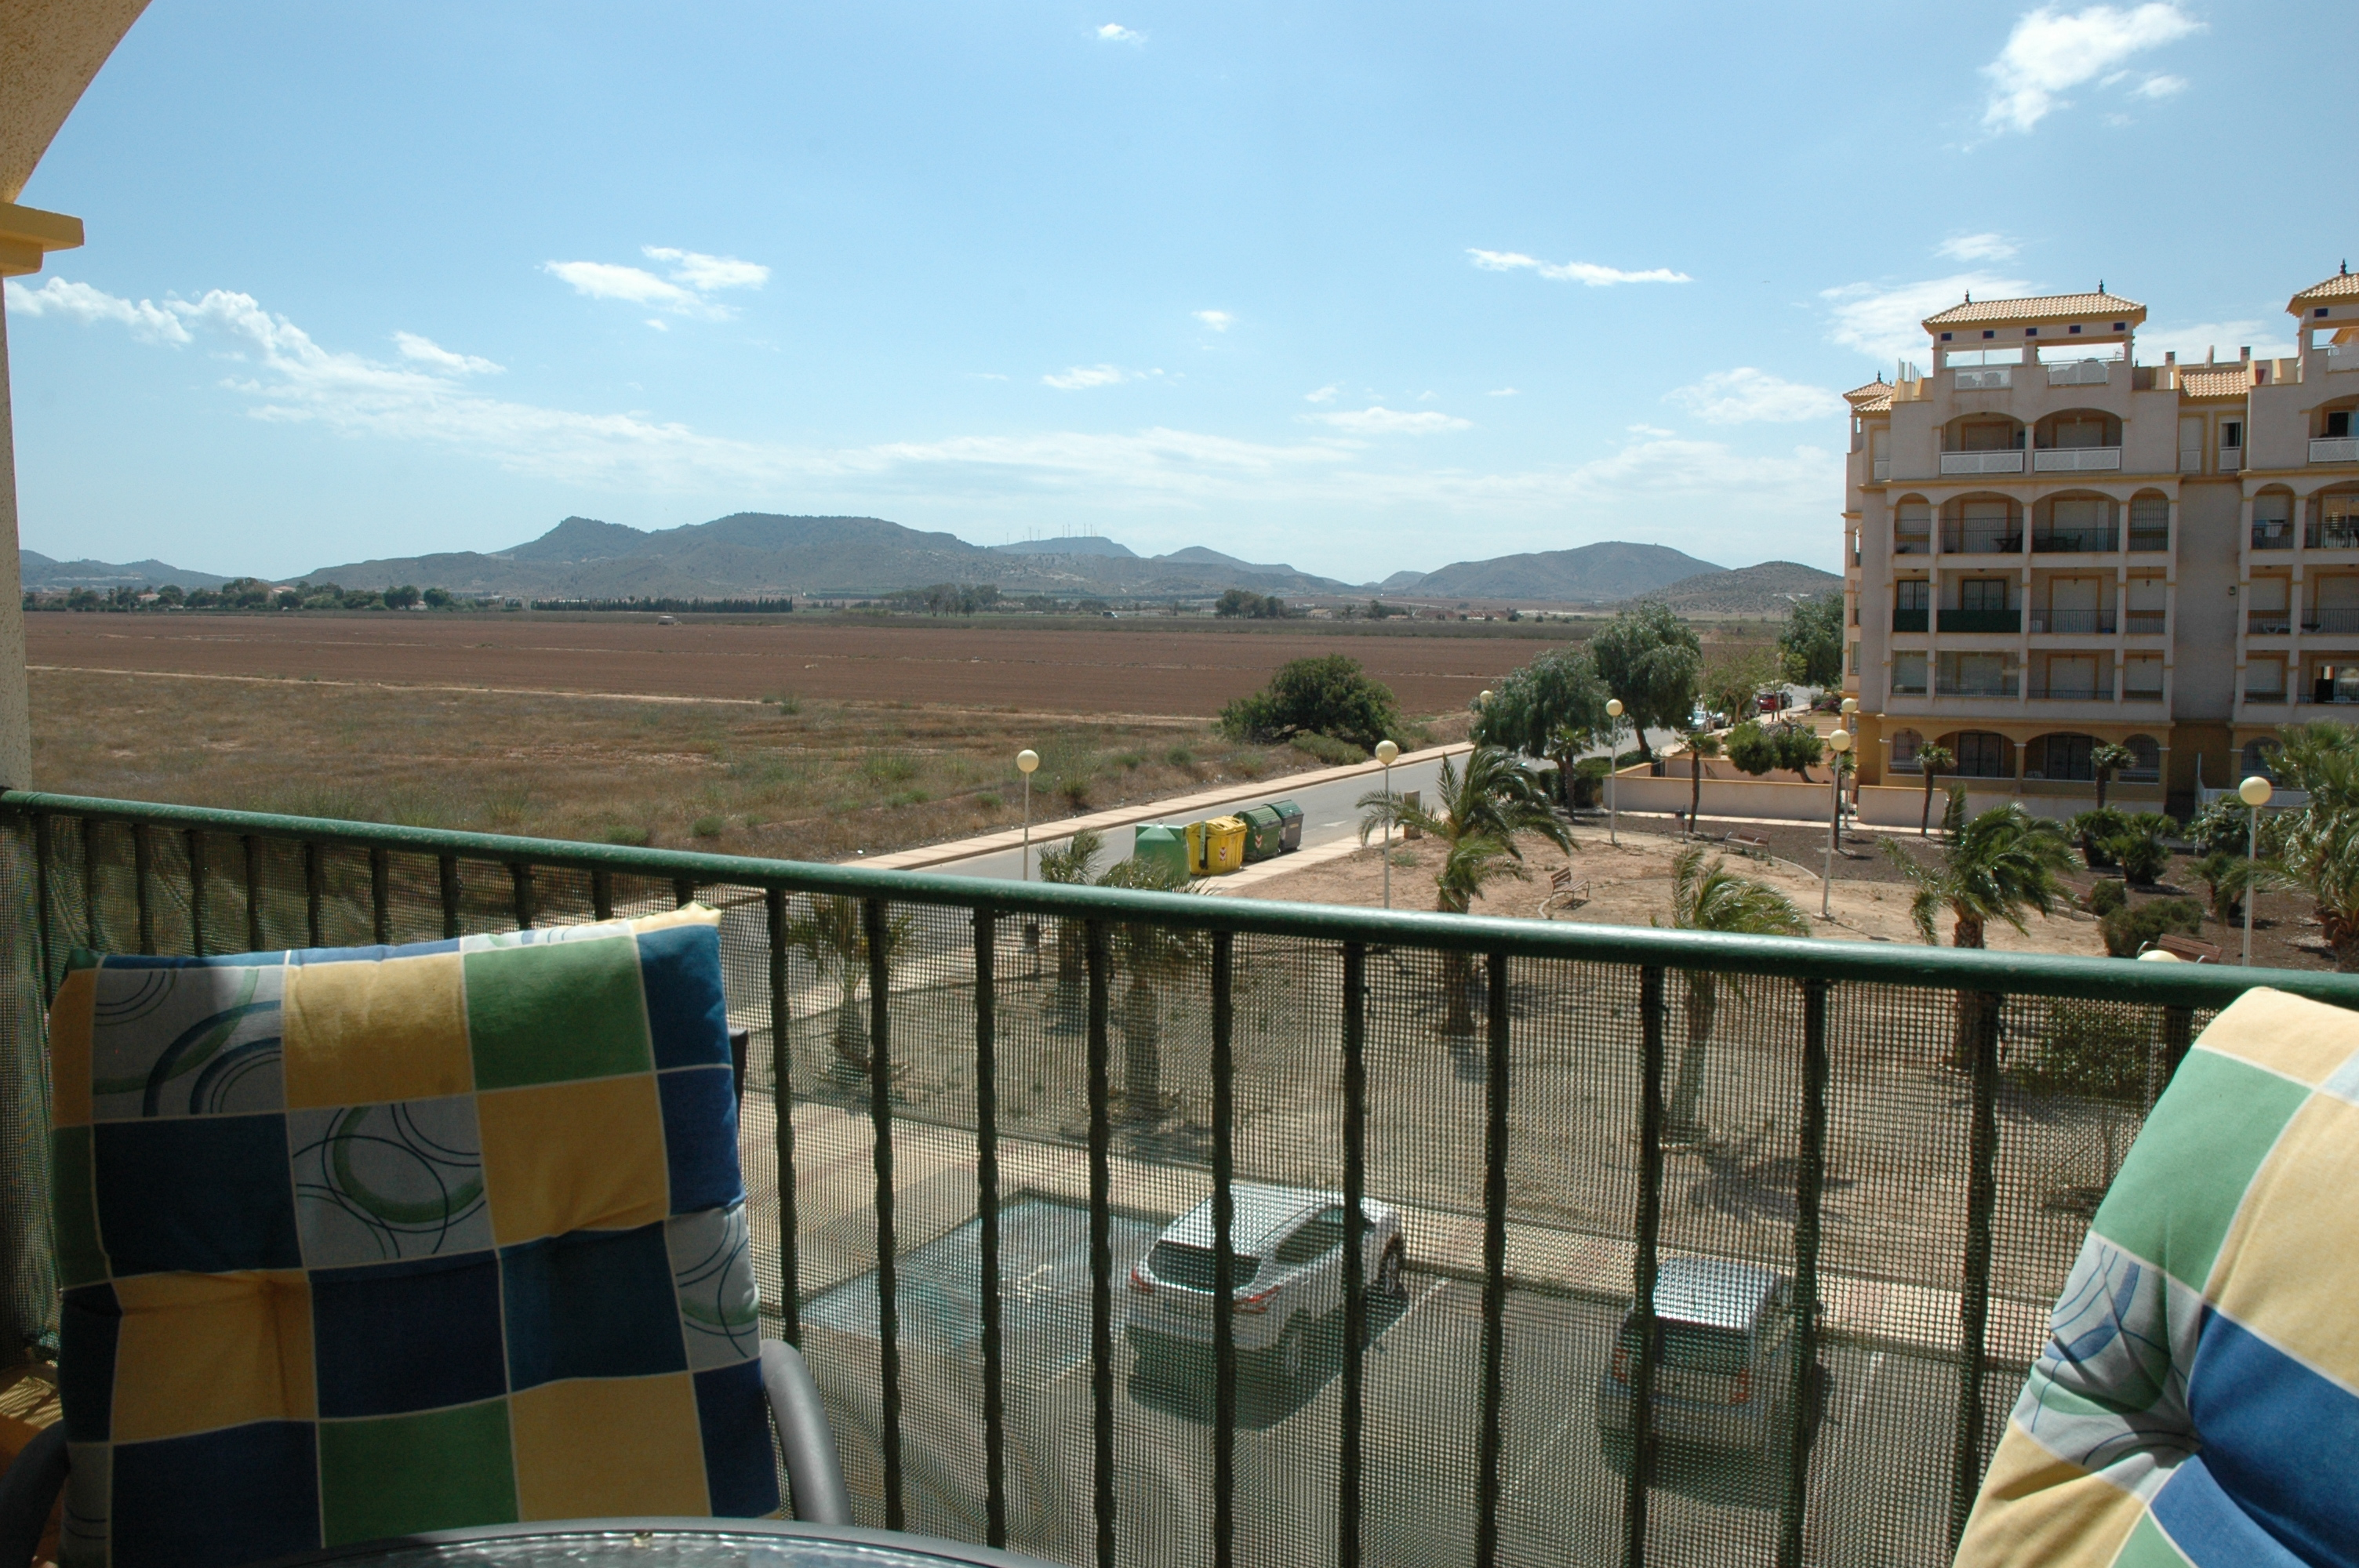 Ref:RB12 Apartment For Sale in Mar De Cristal